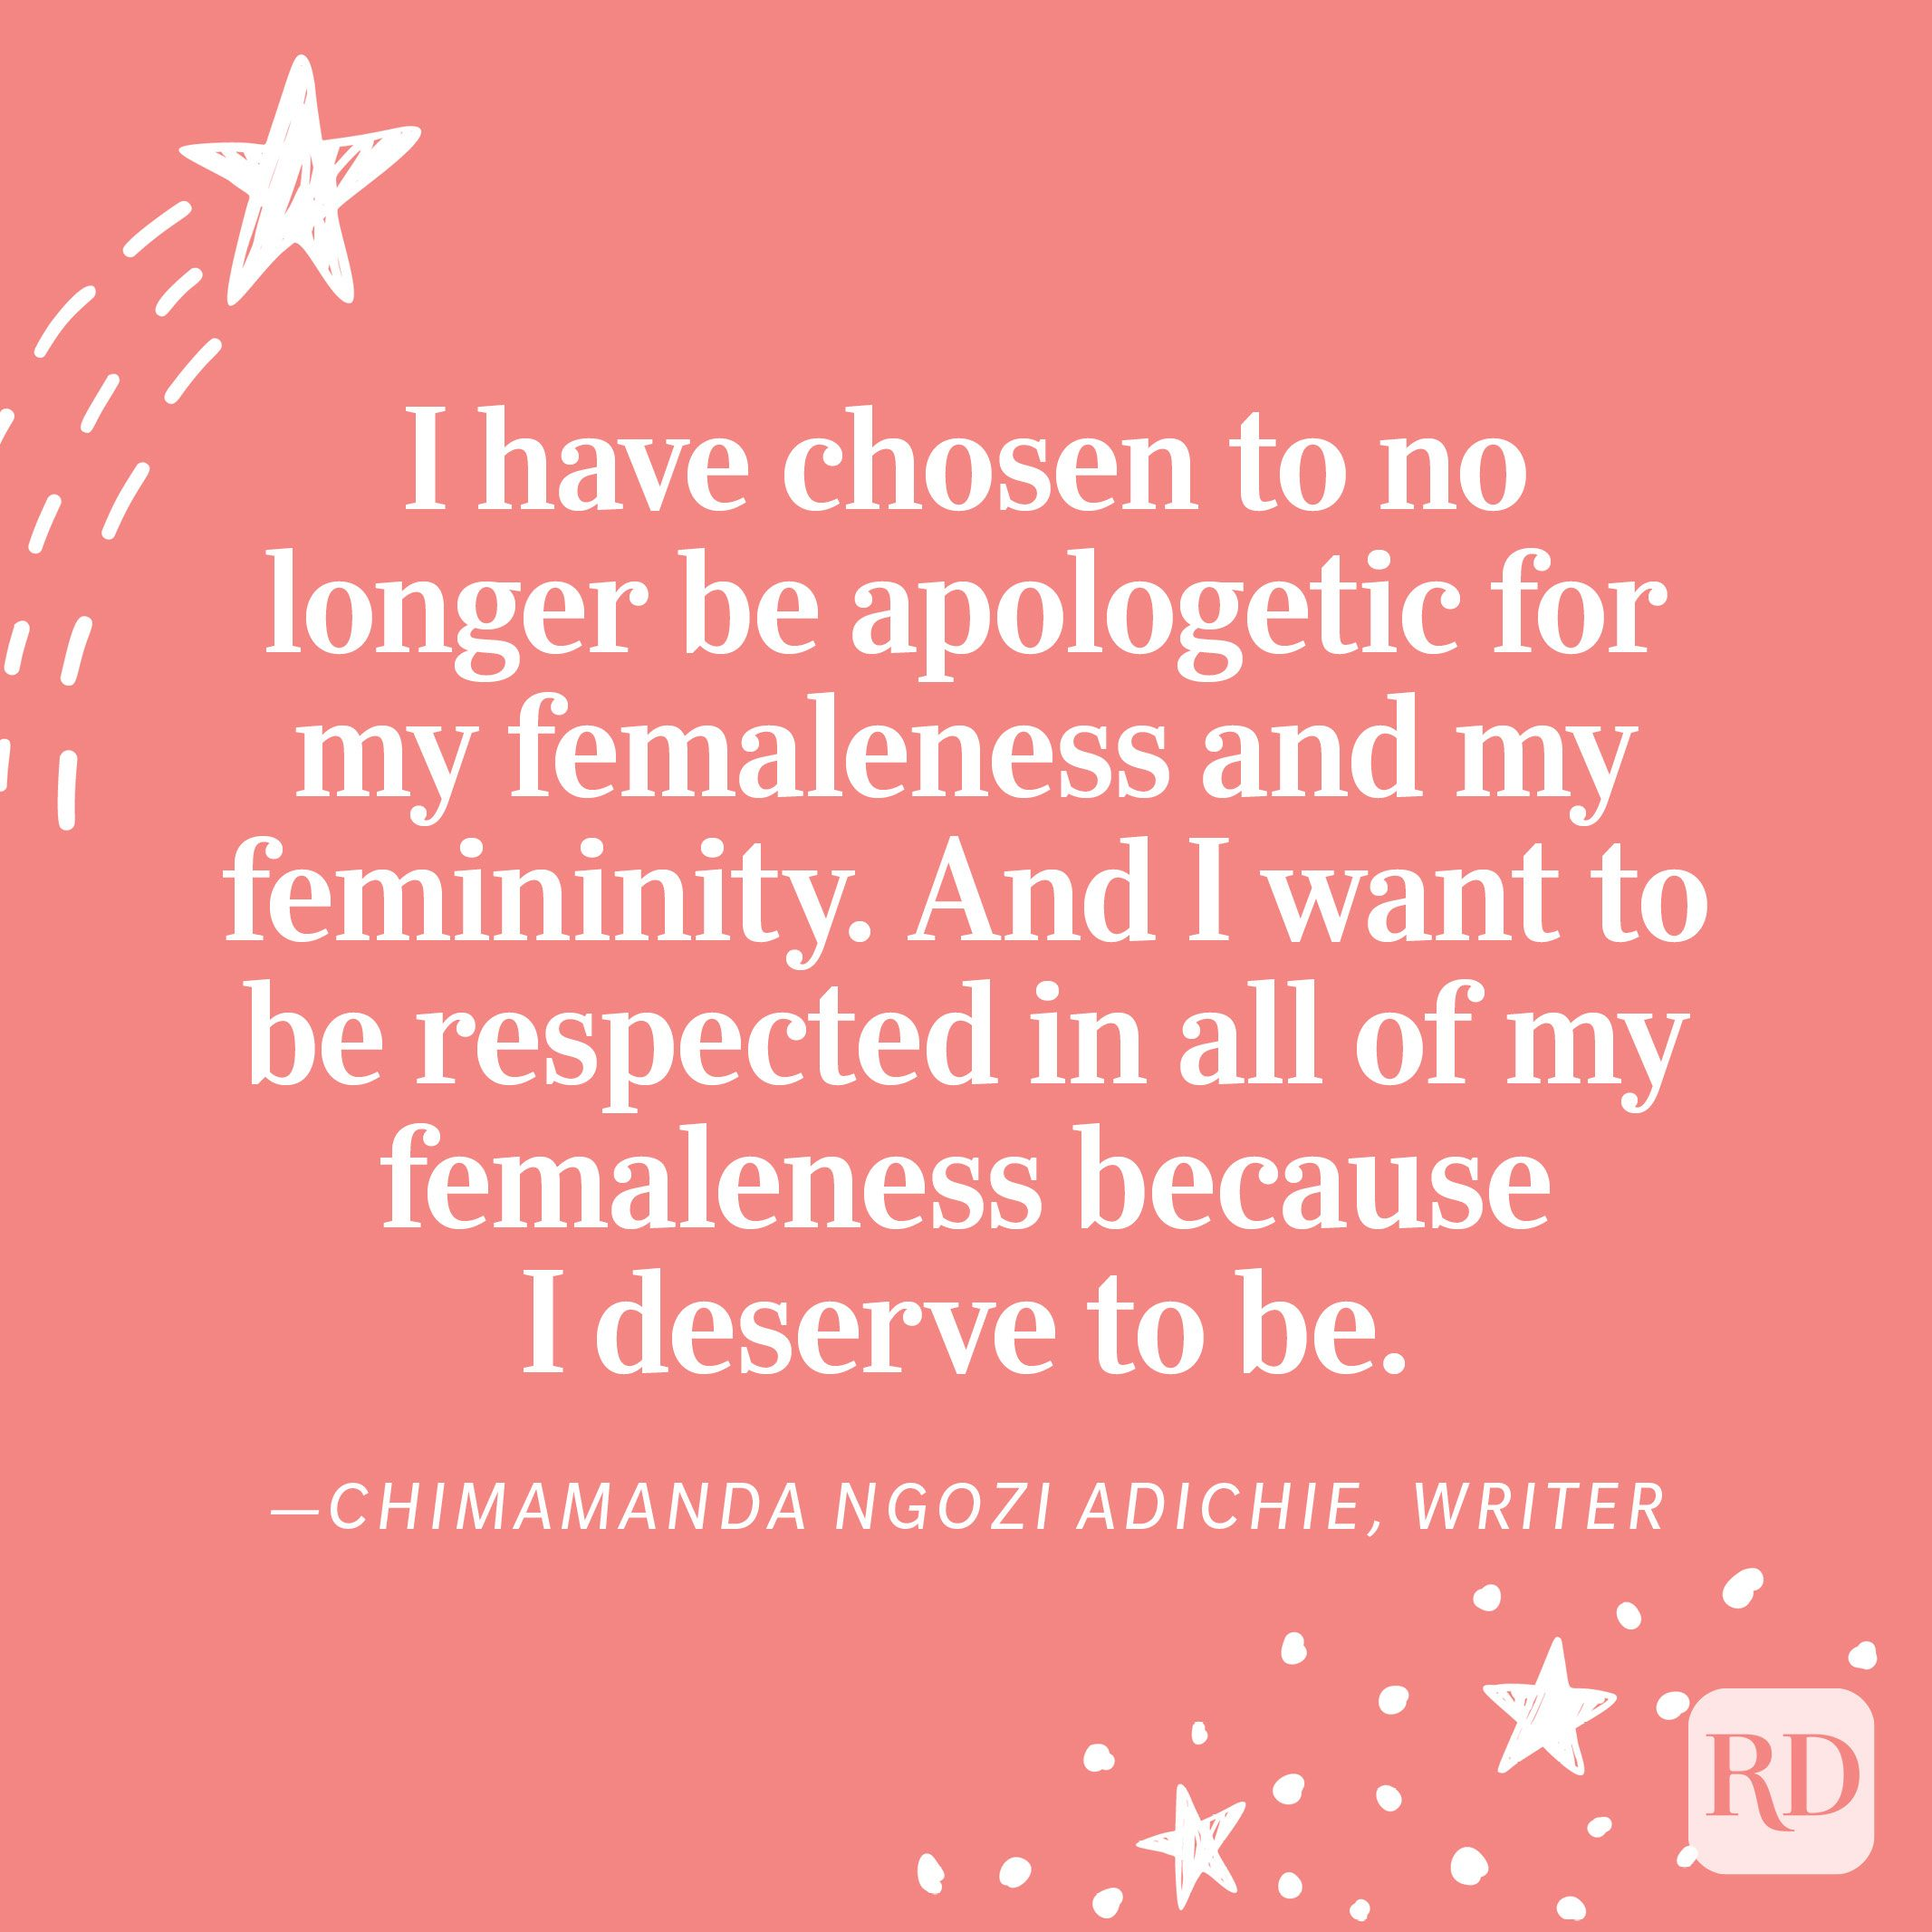 """""""I have chosen to no longer be apologetic for my femaleness and my femininity. And I want to be respected in all of my femaleness because I deserve to be."""" —Chimamanda Ngozi Adichie, writer"""